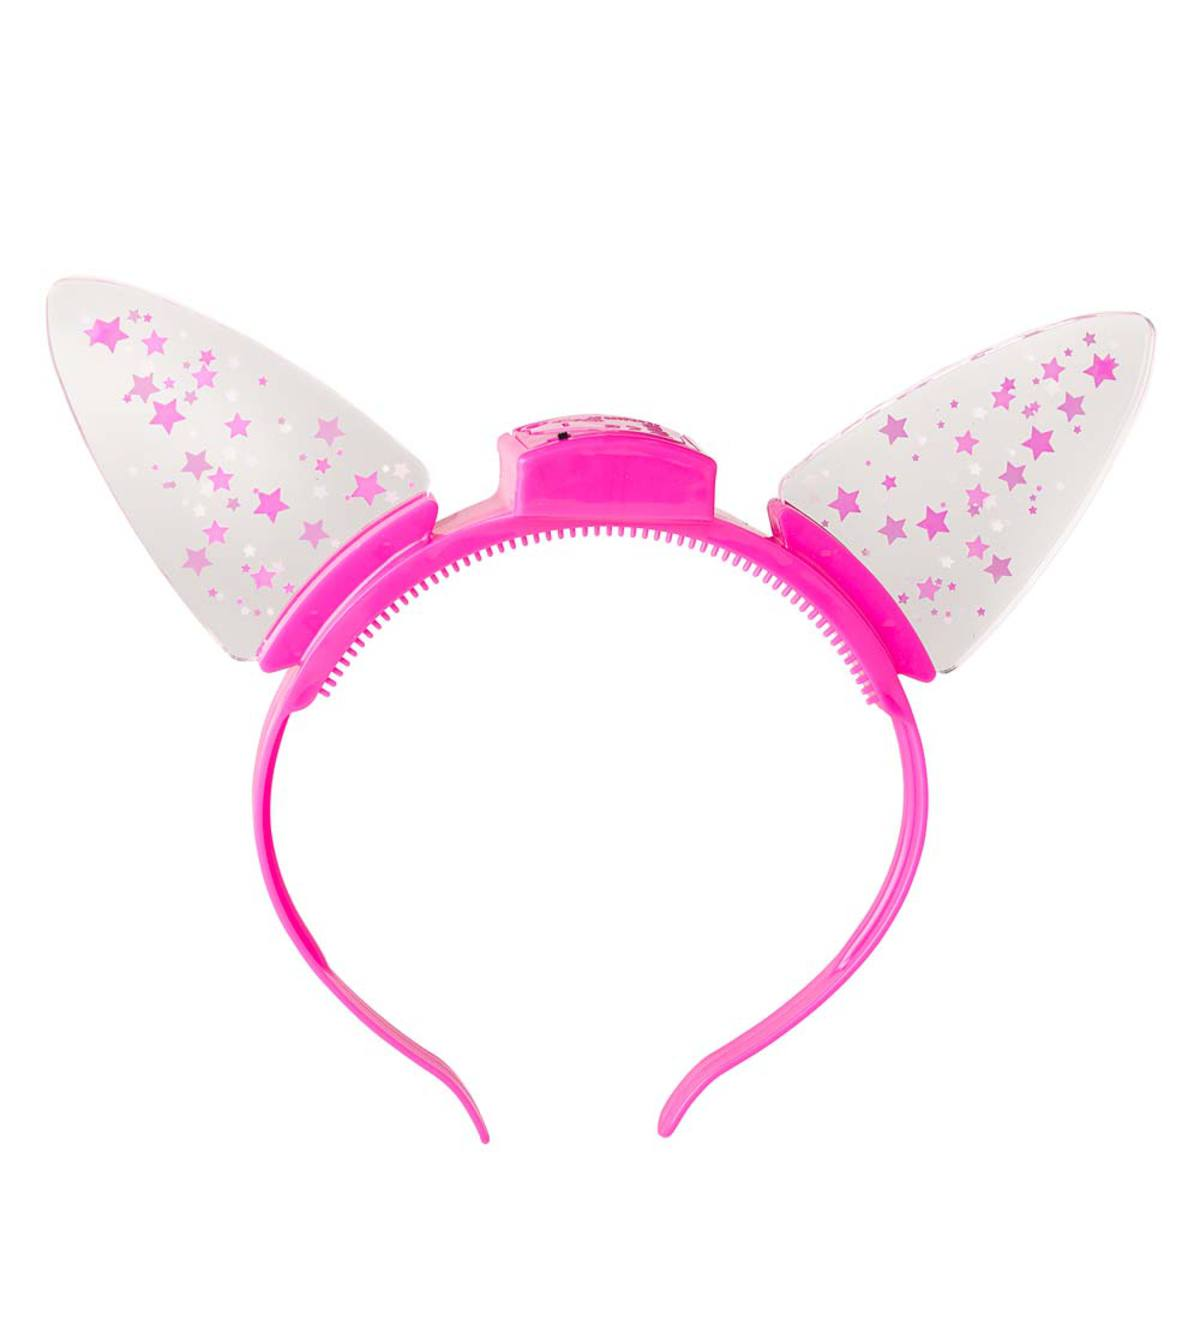 Light-Up Cat Ears